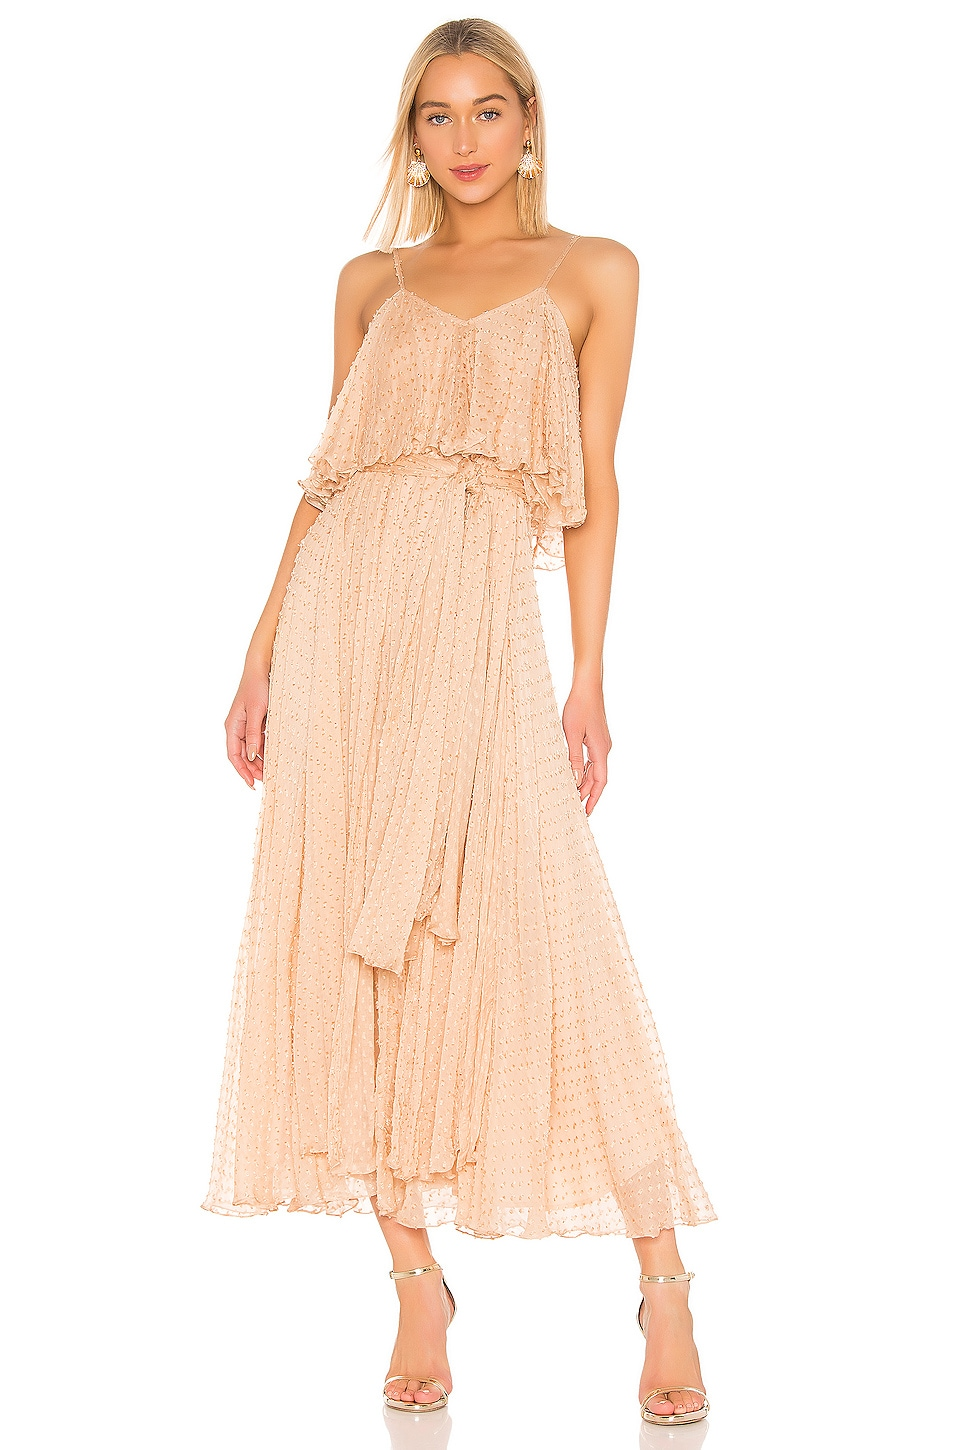 Mes Demoiselles Donatella Dress in Nude